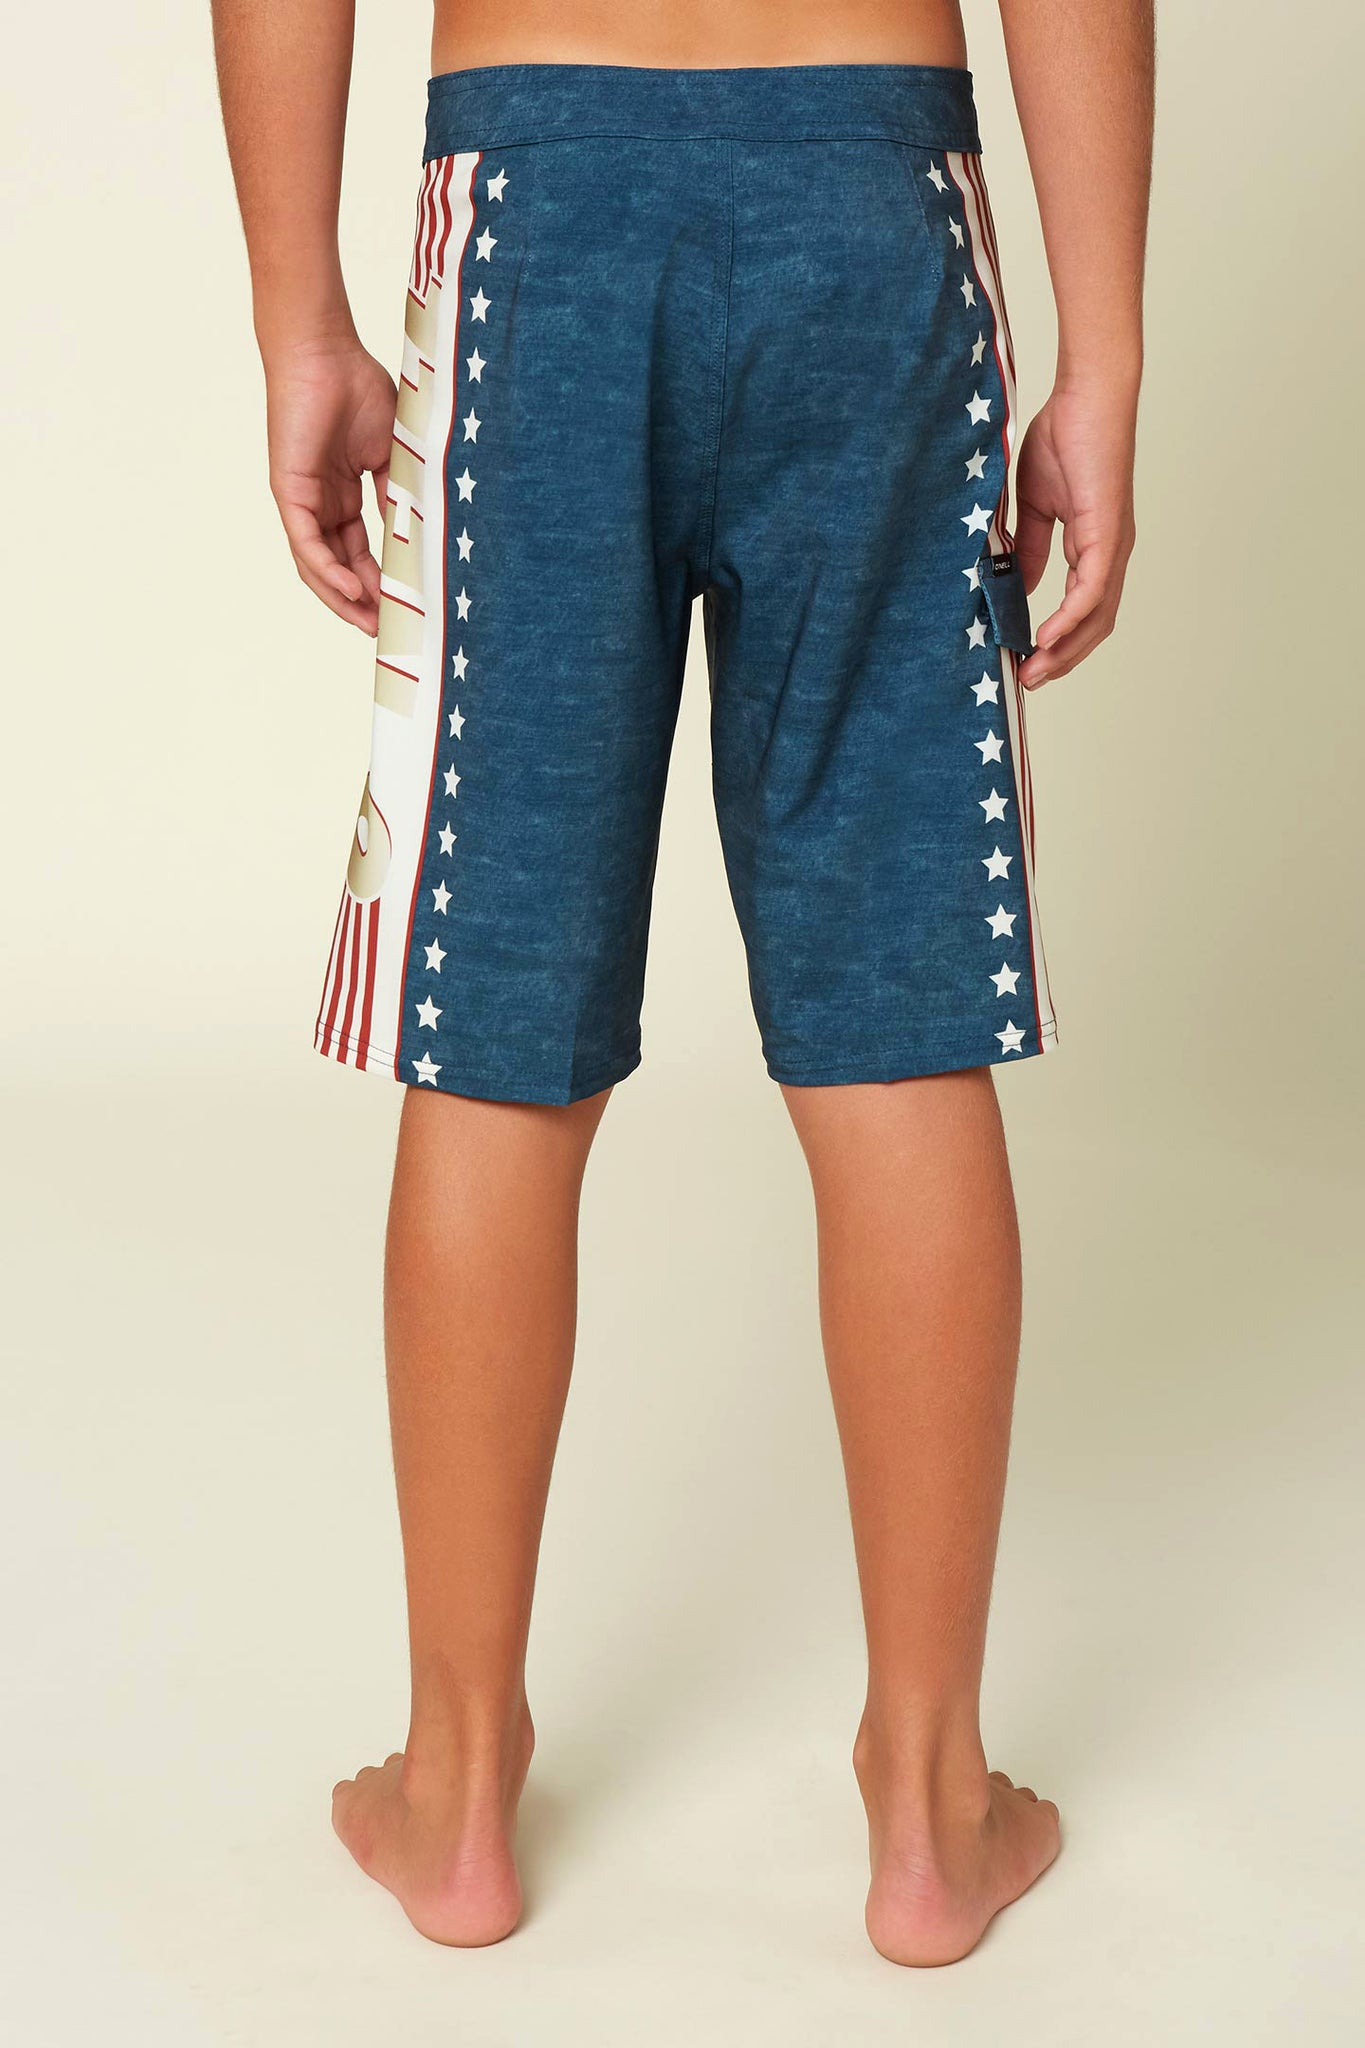 Boys Hyperfreak O'Neivel Boardshorts - Red White Blue | O'Neill